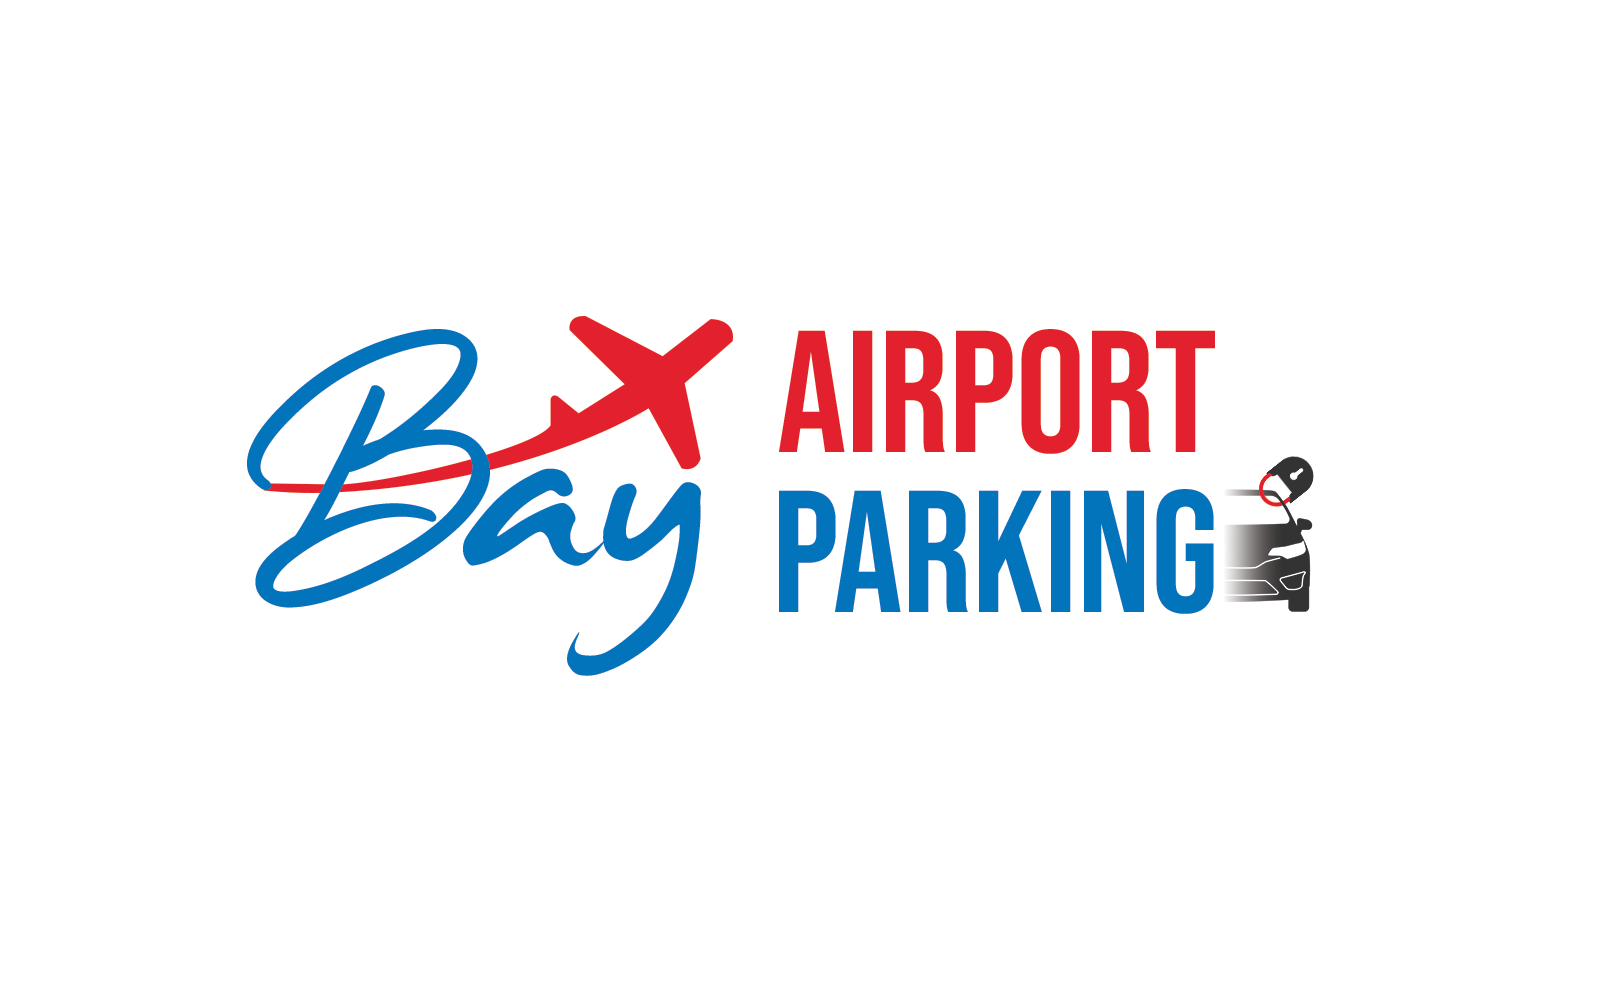 Bay Airport Parking Terminals 1,2,3 & 4